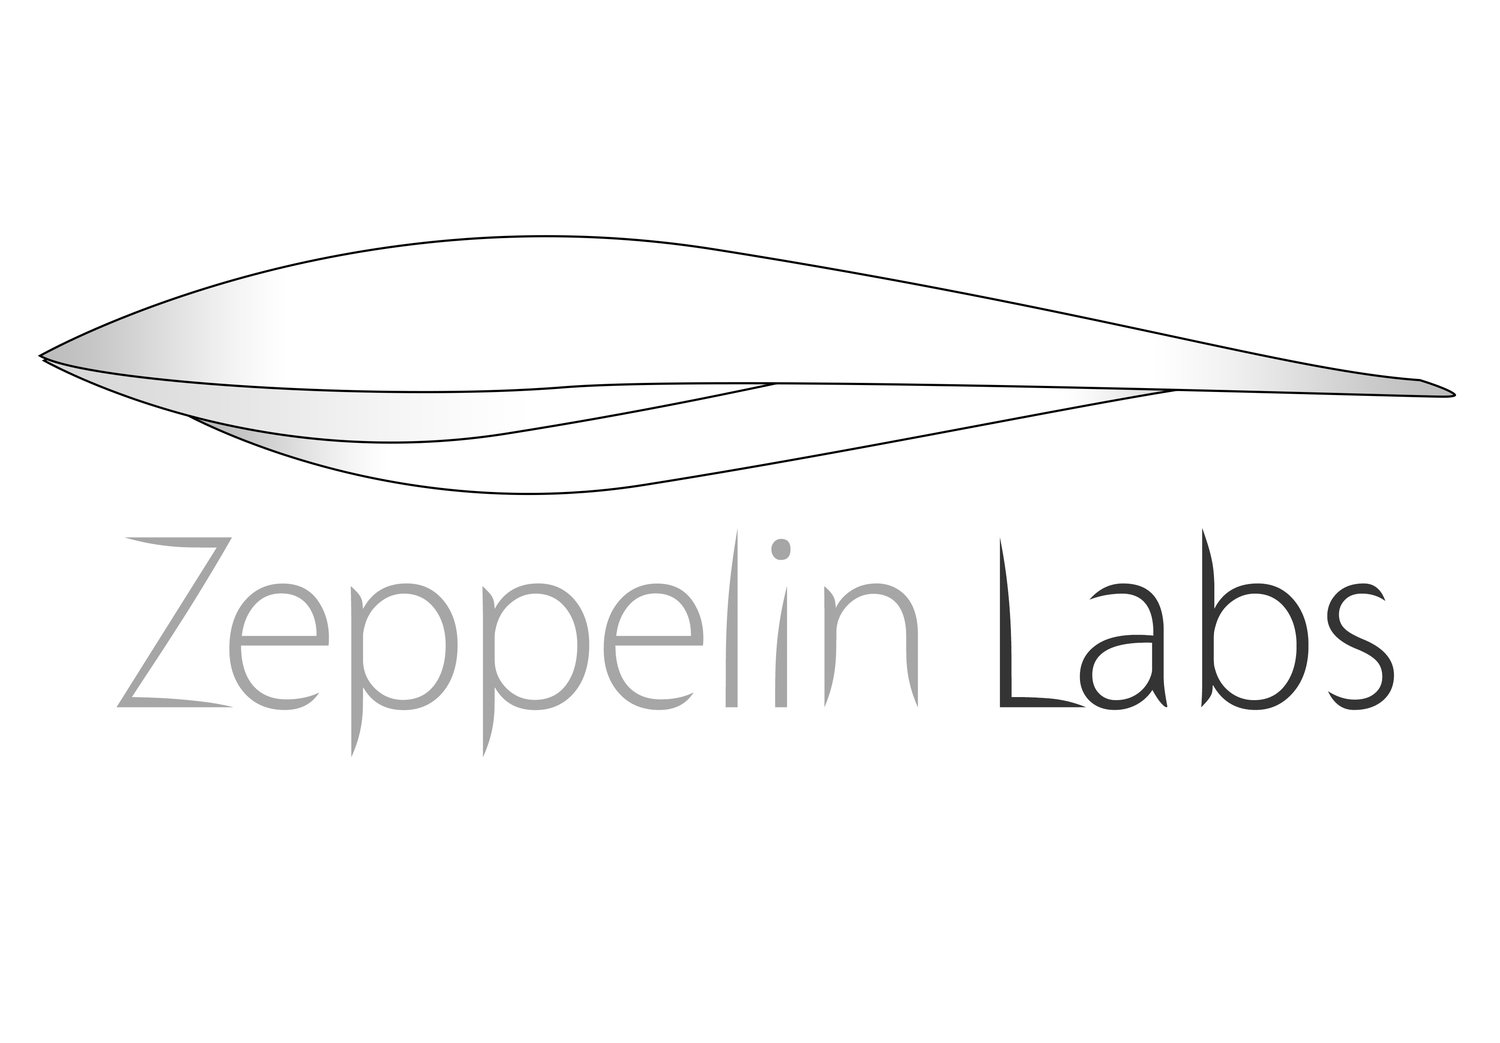 Zeppelin Labs